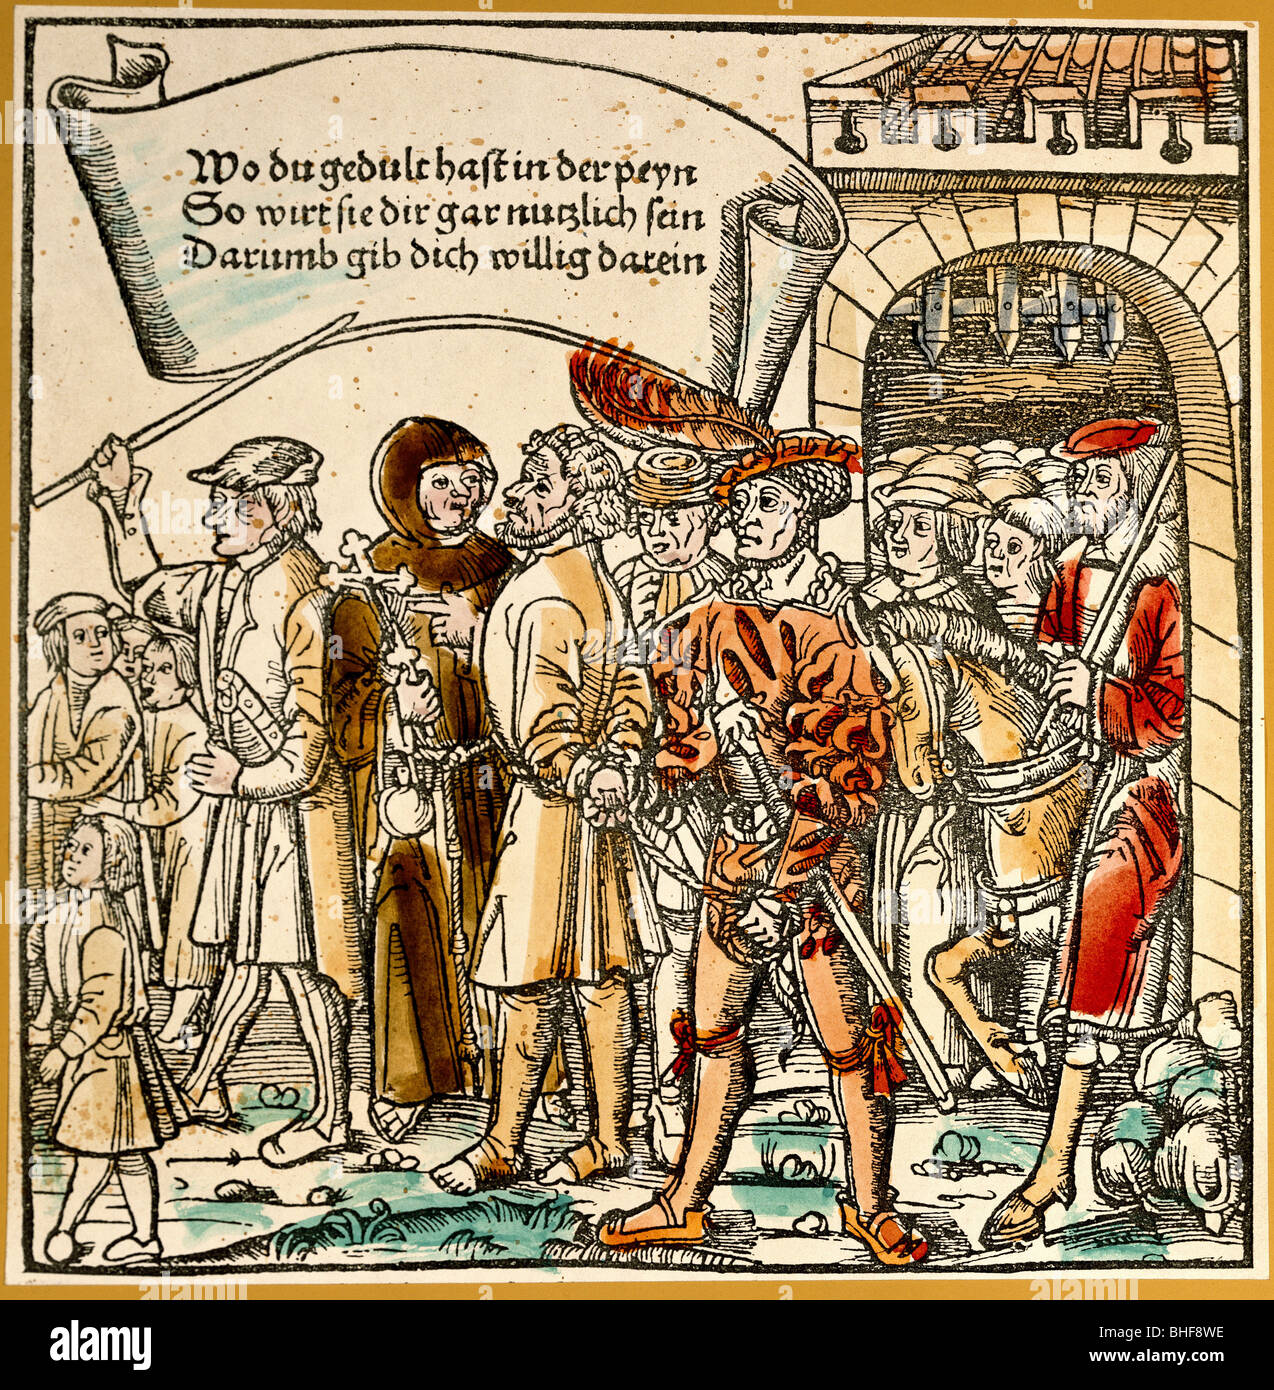 justice, penitentary system, execution, the convict is brought to the gallows, Johann zu Schwarzenberg 'Bambergische - Stock Image